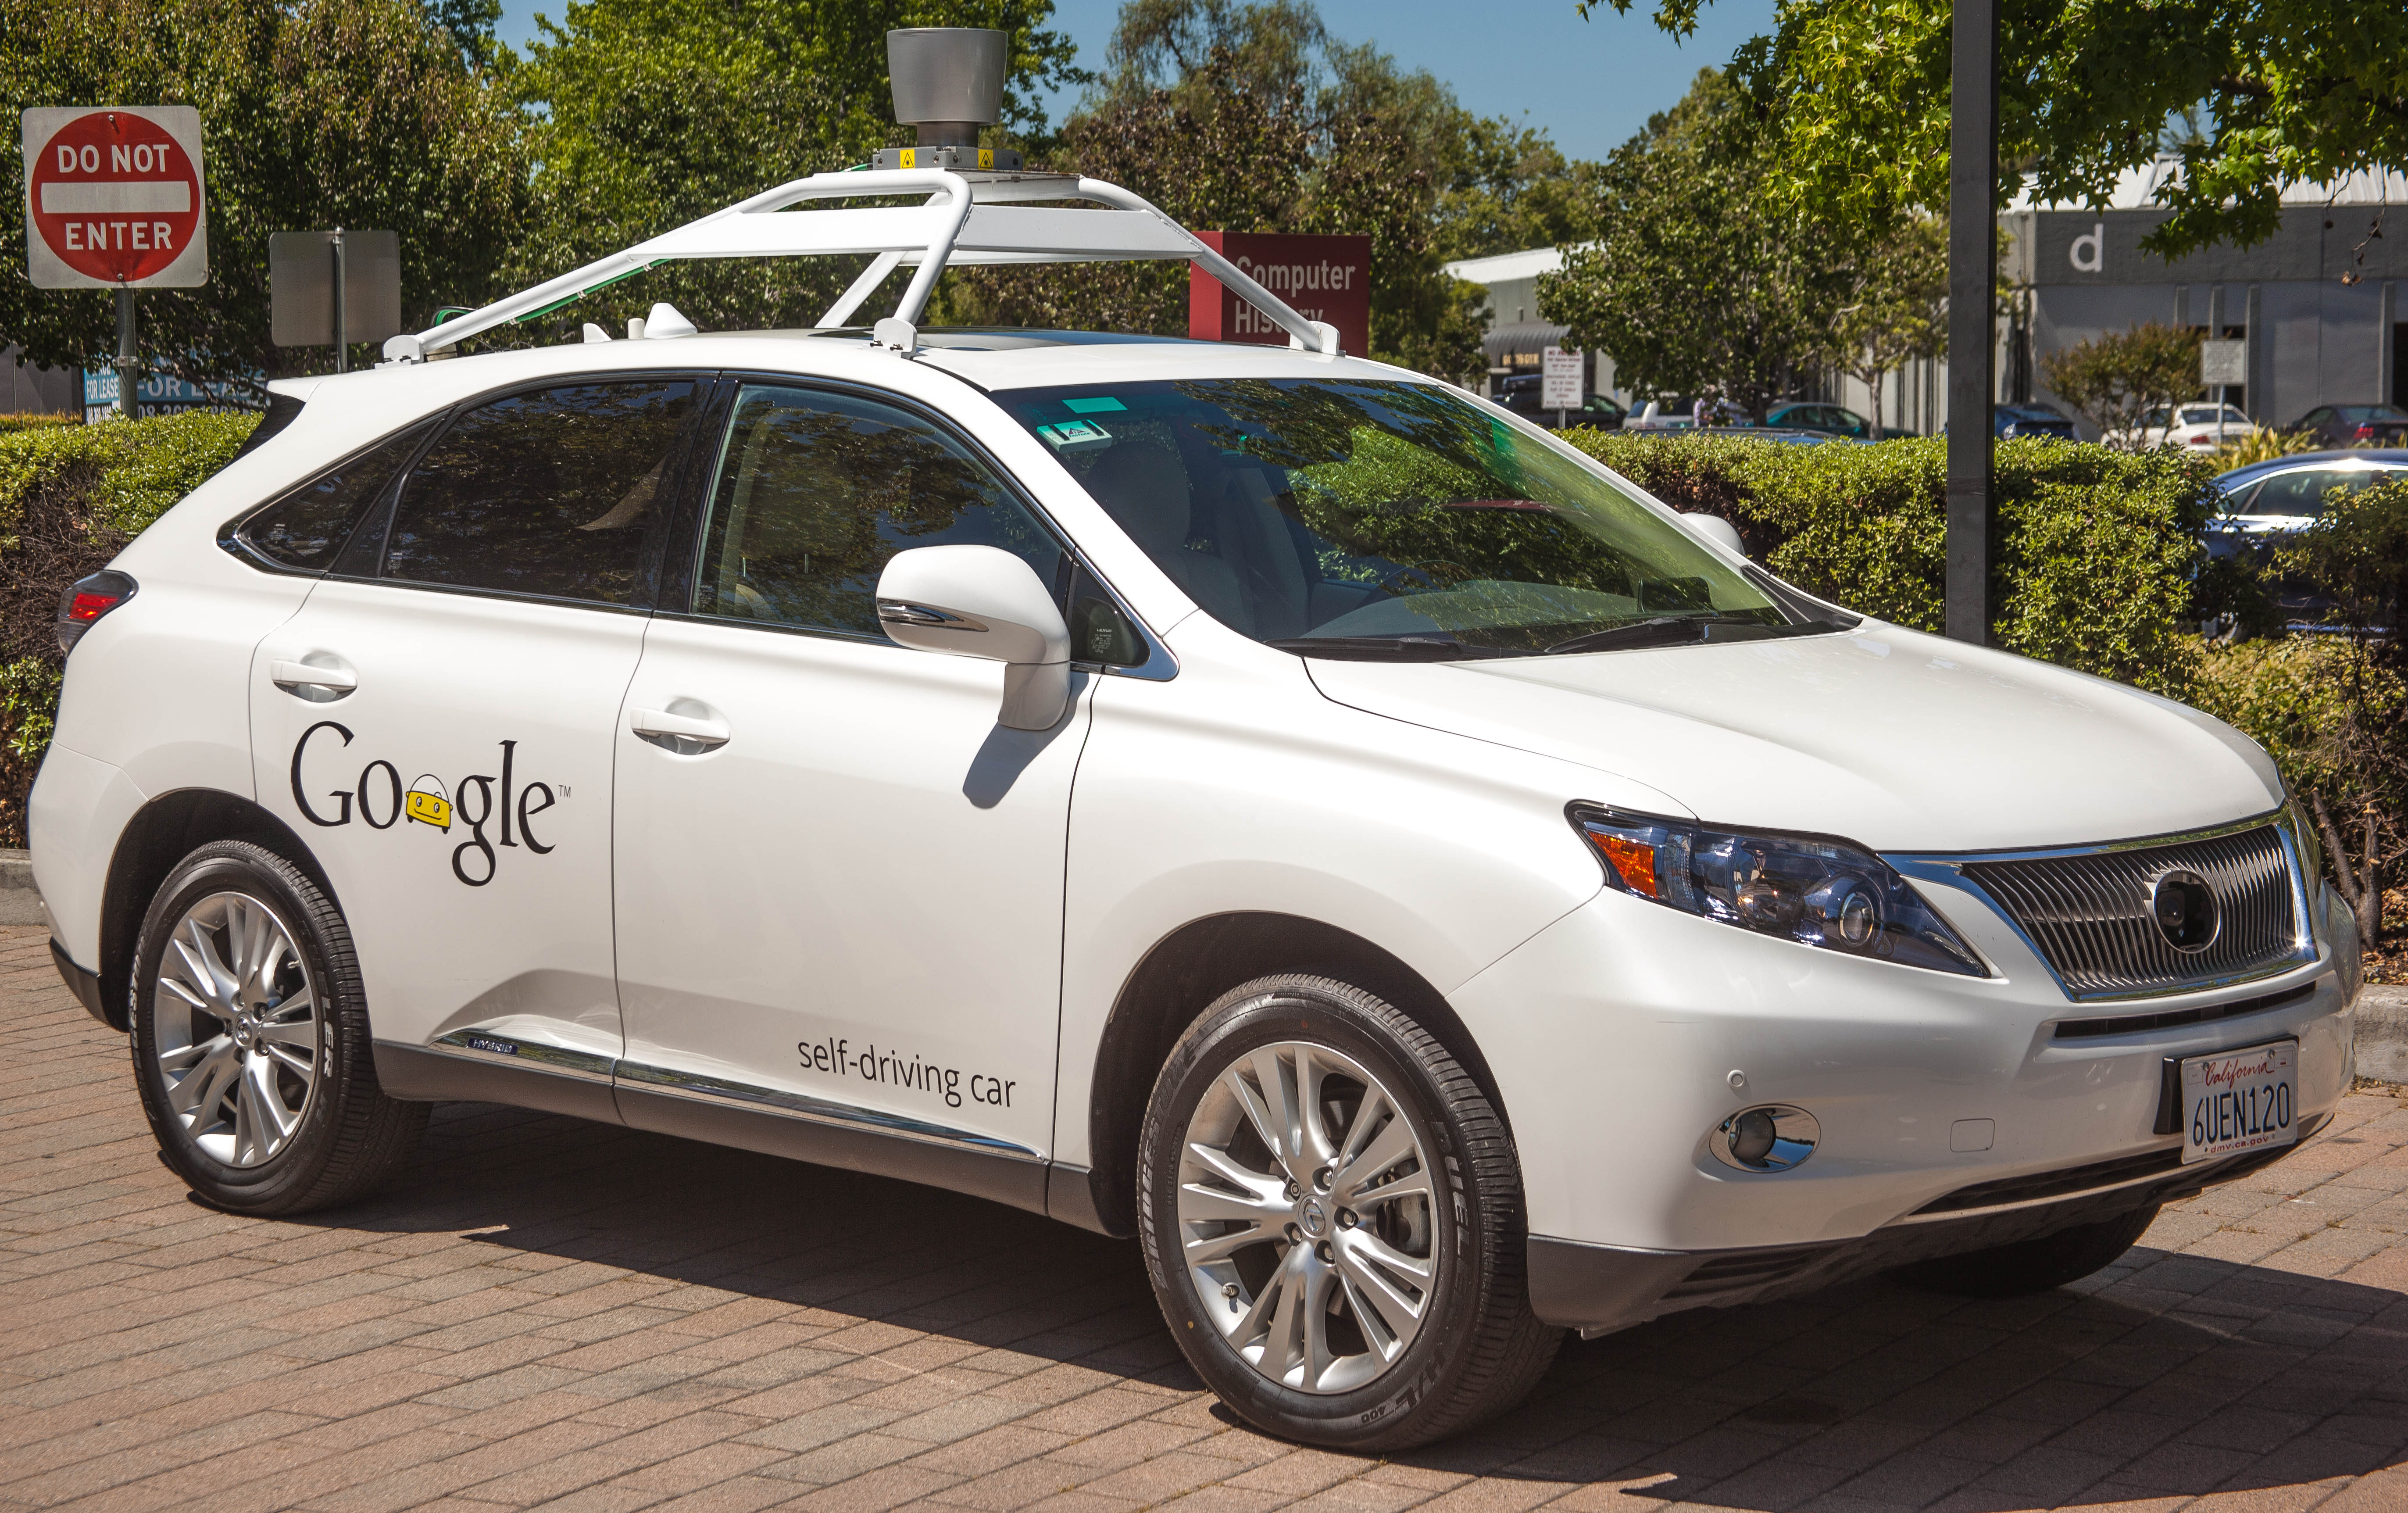 2014-05-13-google-self-driving-car-8.jpg